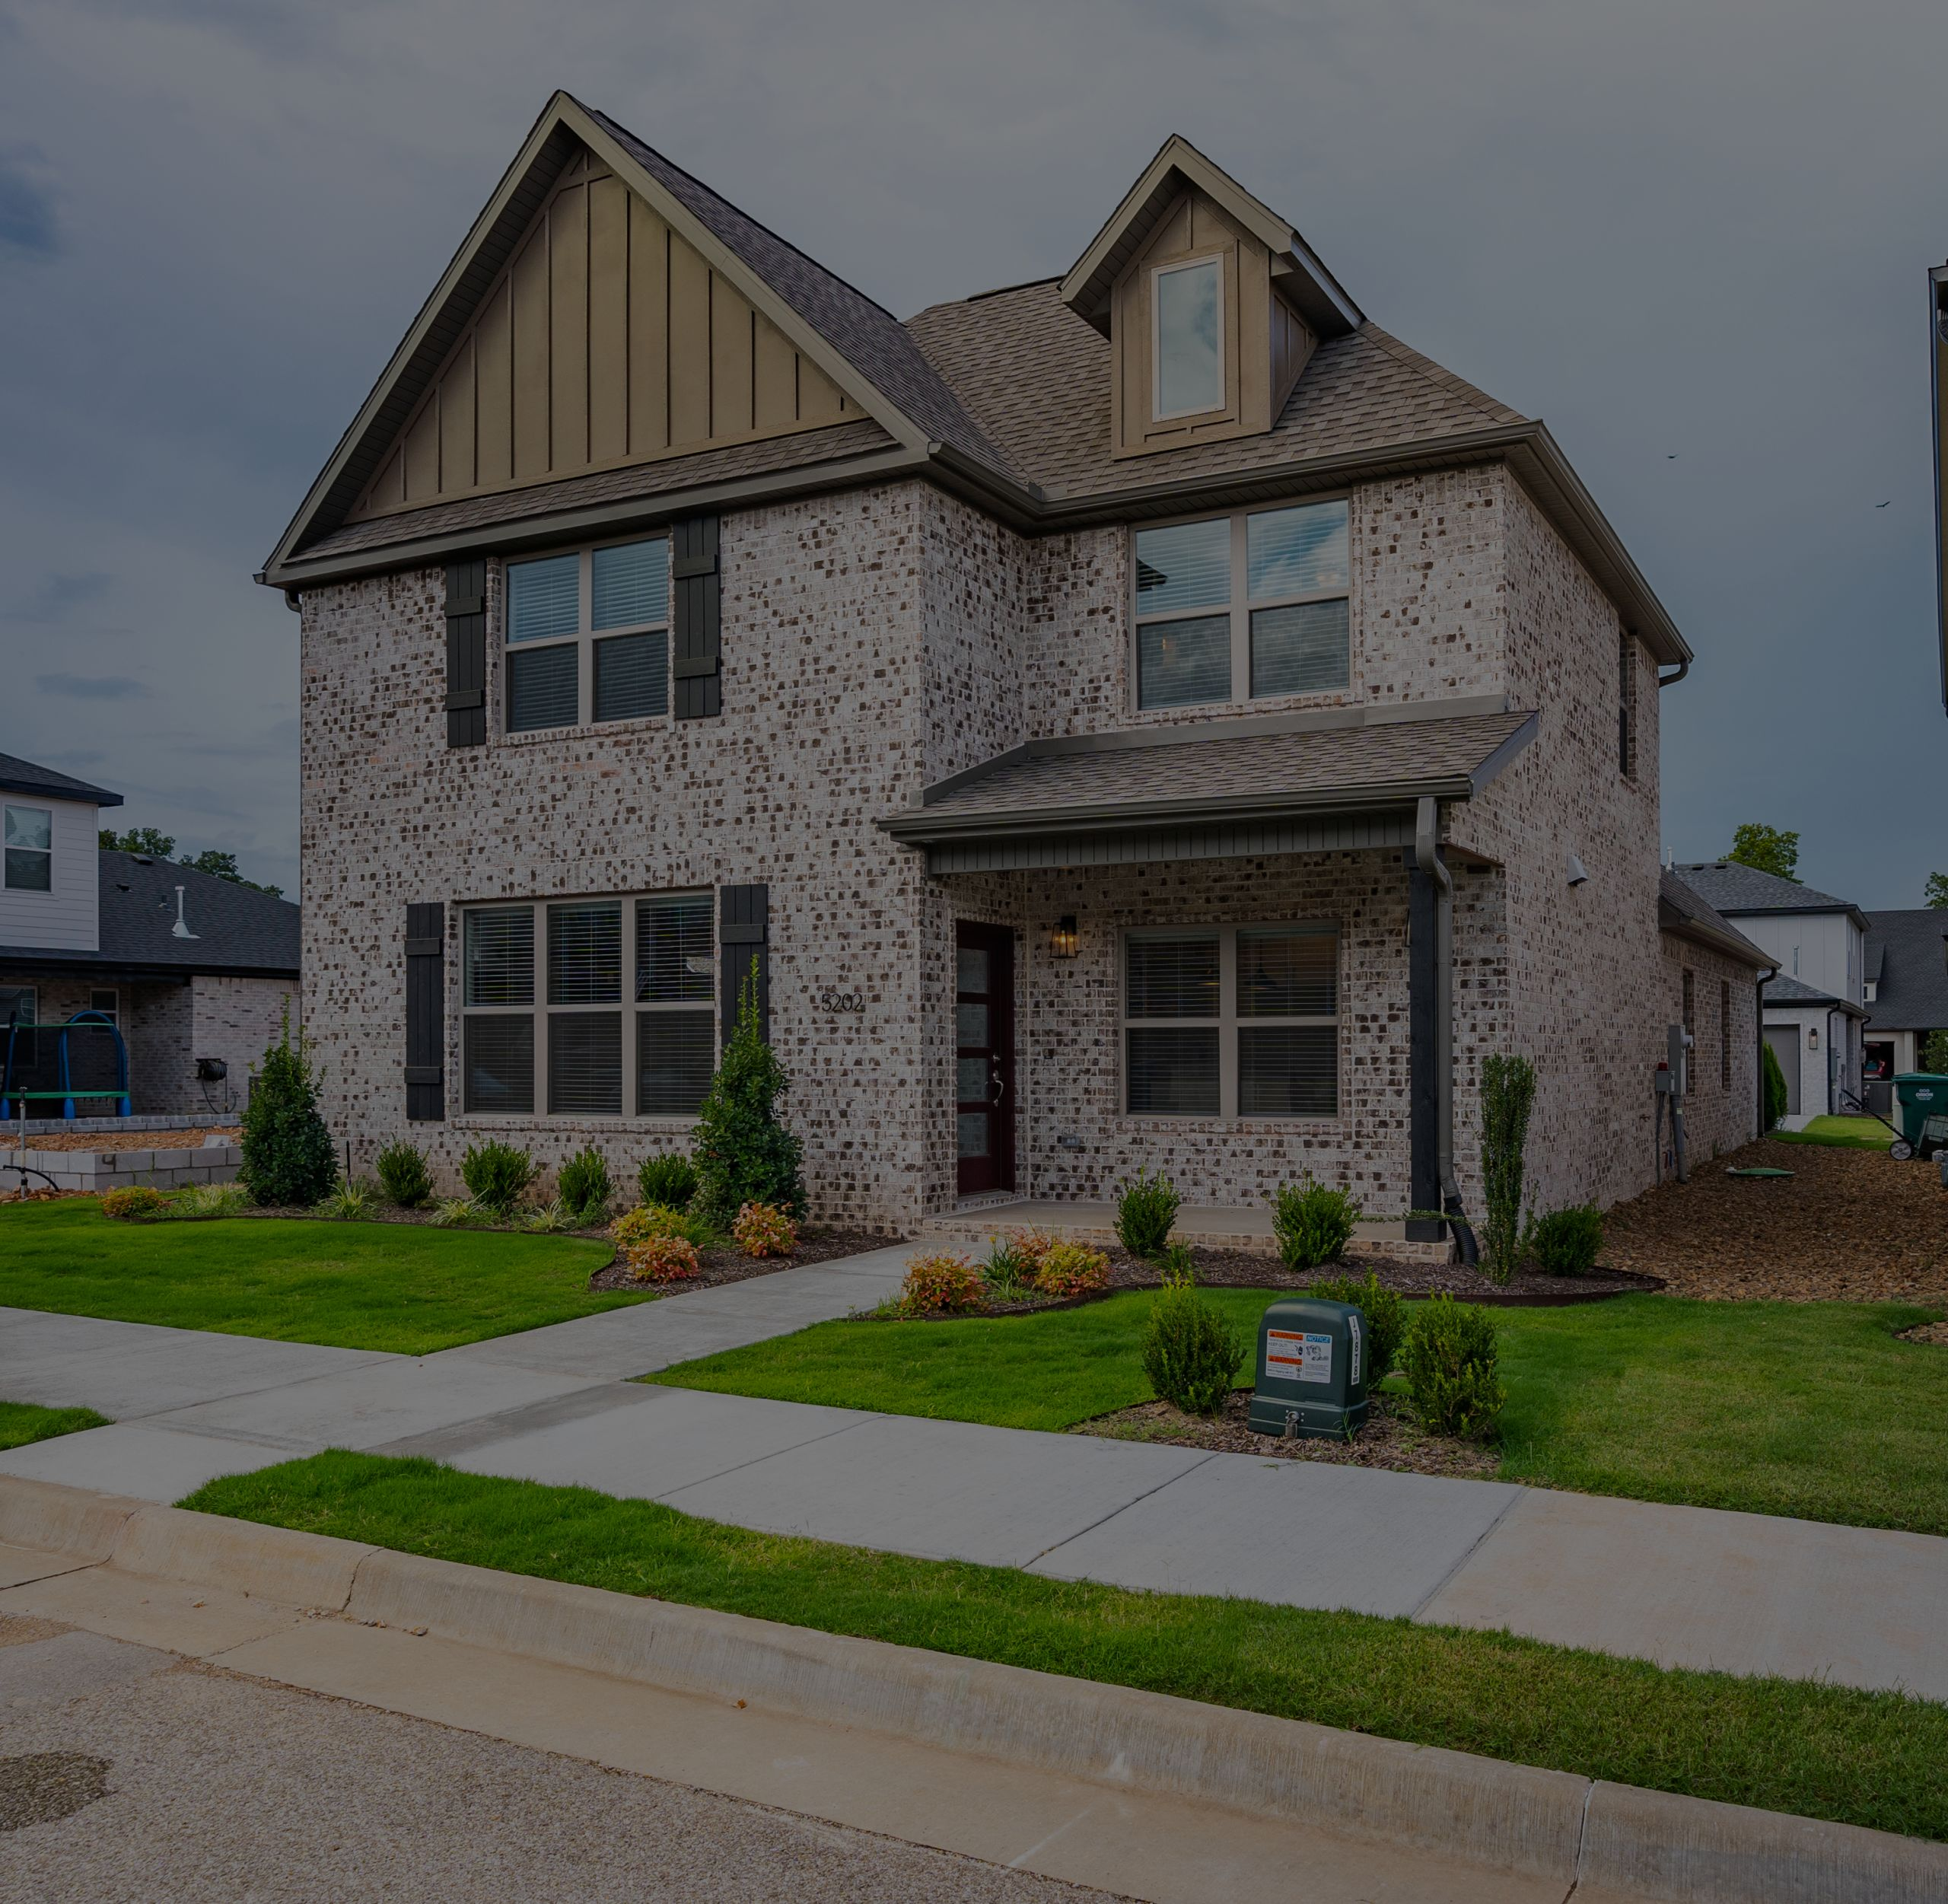 """5202 S Brookmere St - $365,000 """"Contract Pending"""""""